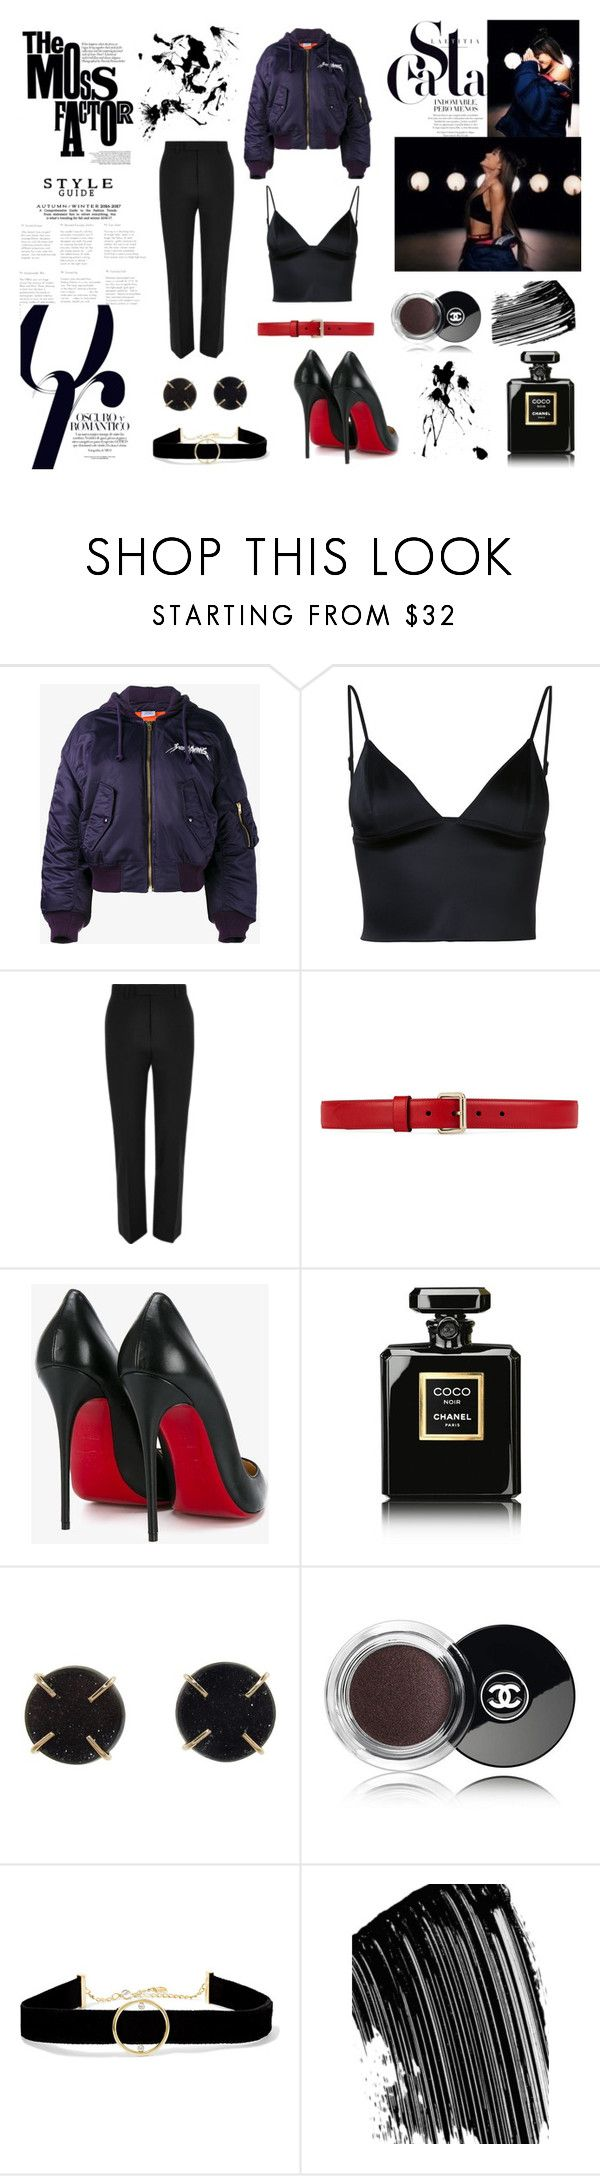 """Ariana Grande - EVERYDAY"" by alina-zaynullina ❤ liked on Polyvore featuring T By Alexander Wang, River Island, Gucci, Christian Louboutin, Nico, Chanel, Melissa Joy Manning and Anissa Kermiche"